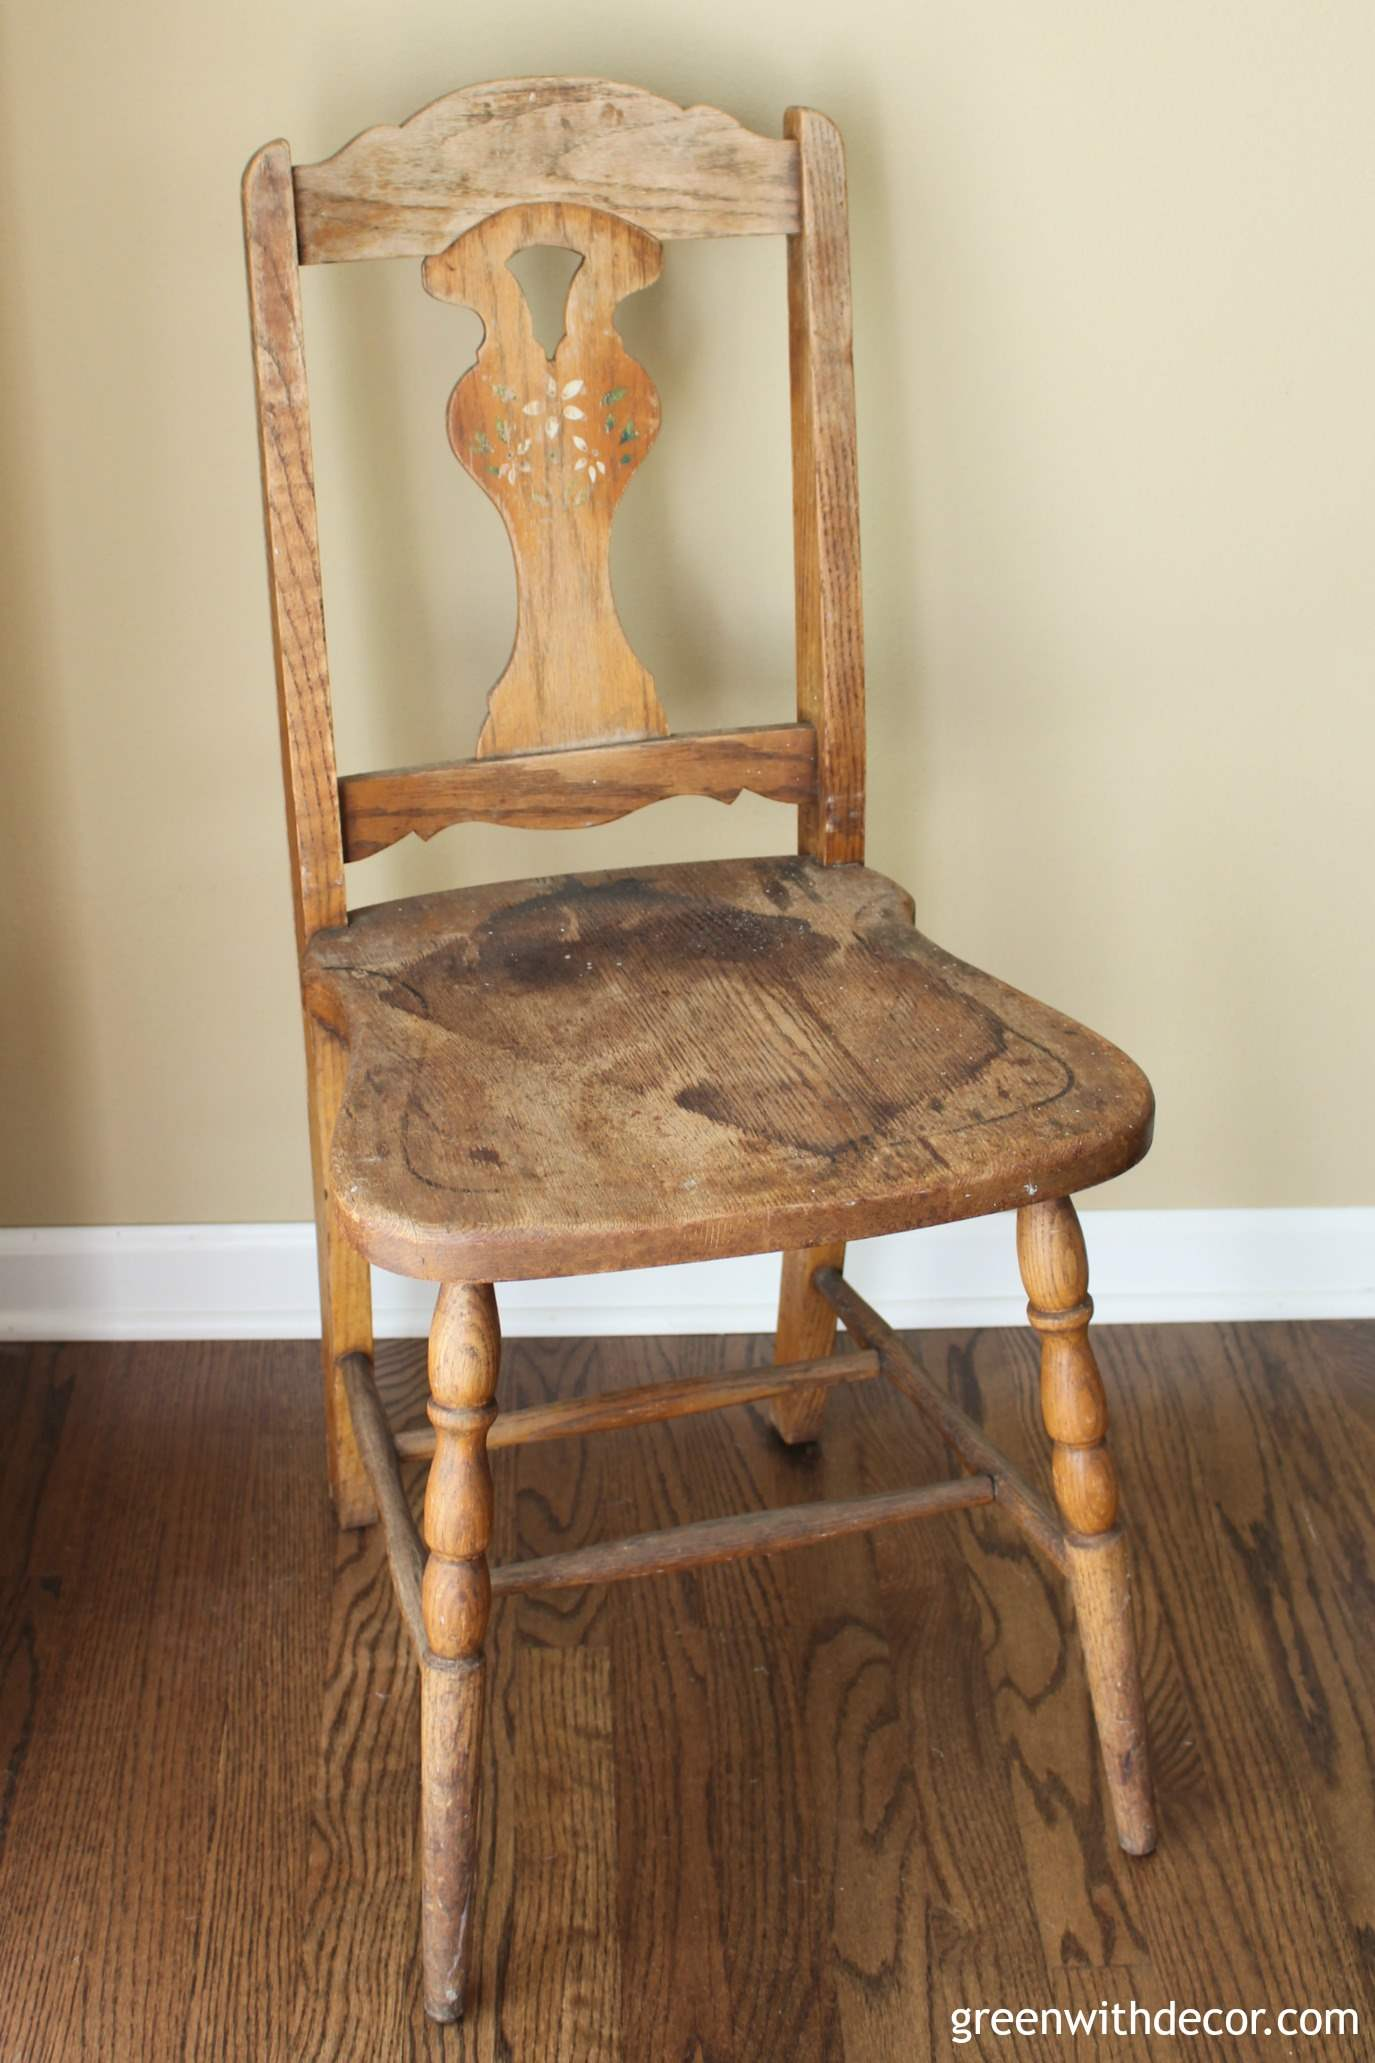 painting-an-old-wooden-chair-before-2 & painting-an-old-wooden-chair-before-2 - Green With Decor